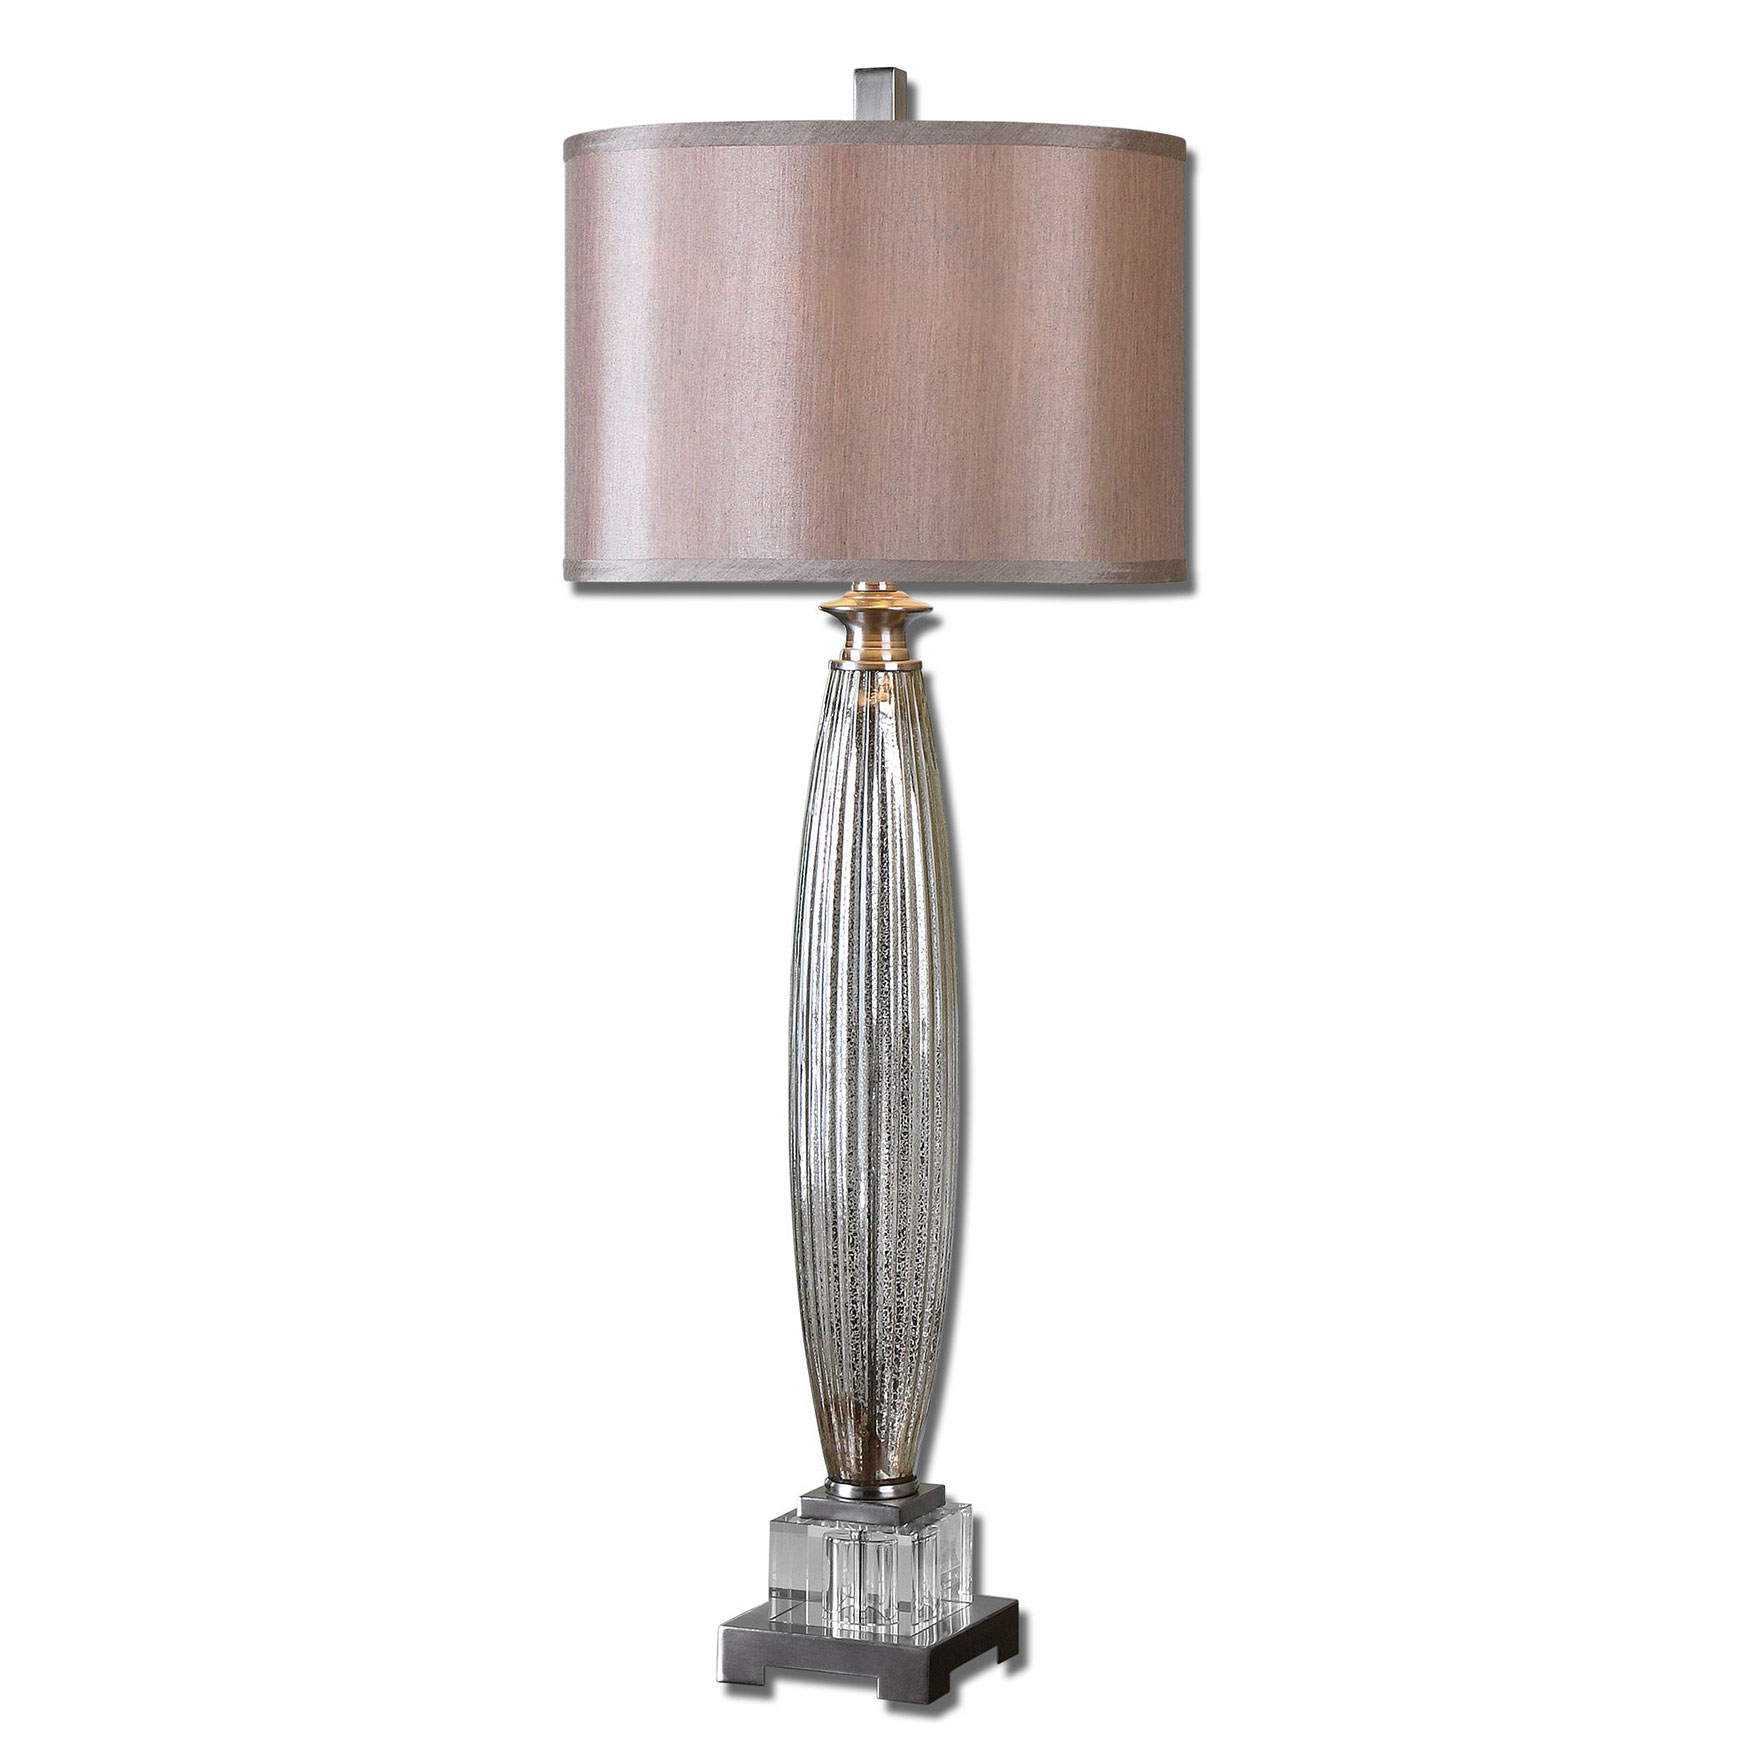 Loredo Mercury Glass Table Lamp, AMBER